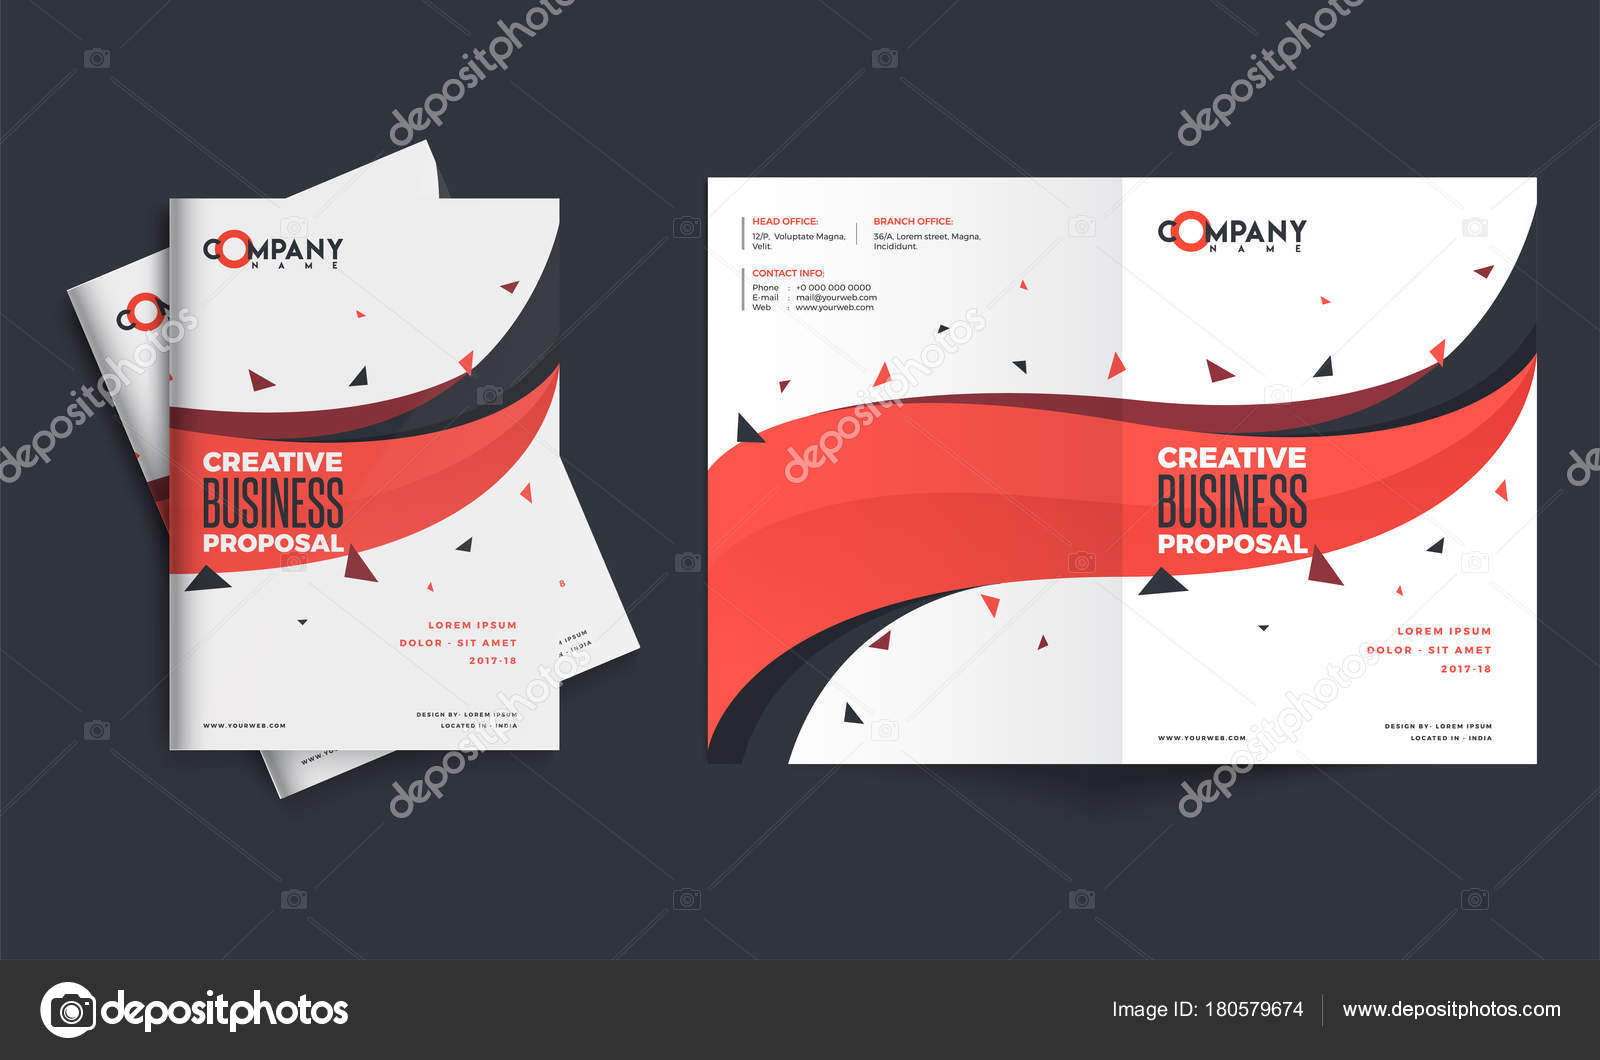 Creative Business Proposal Design Corporate Template Layout Wit